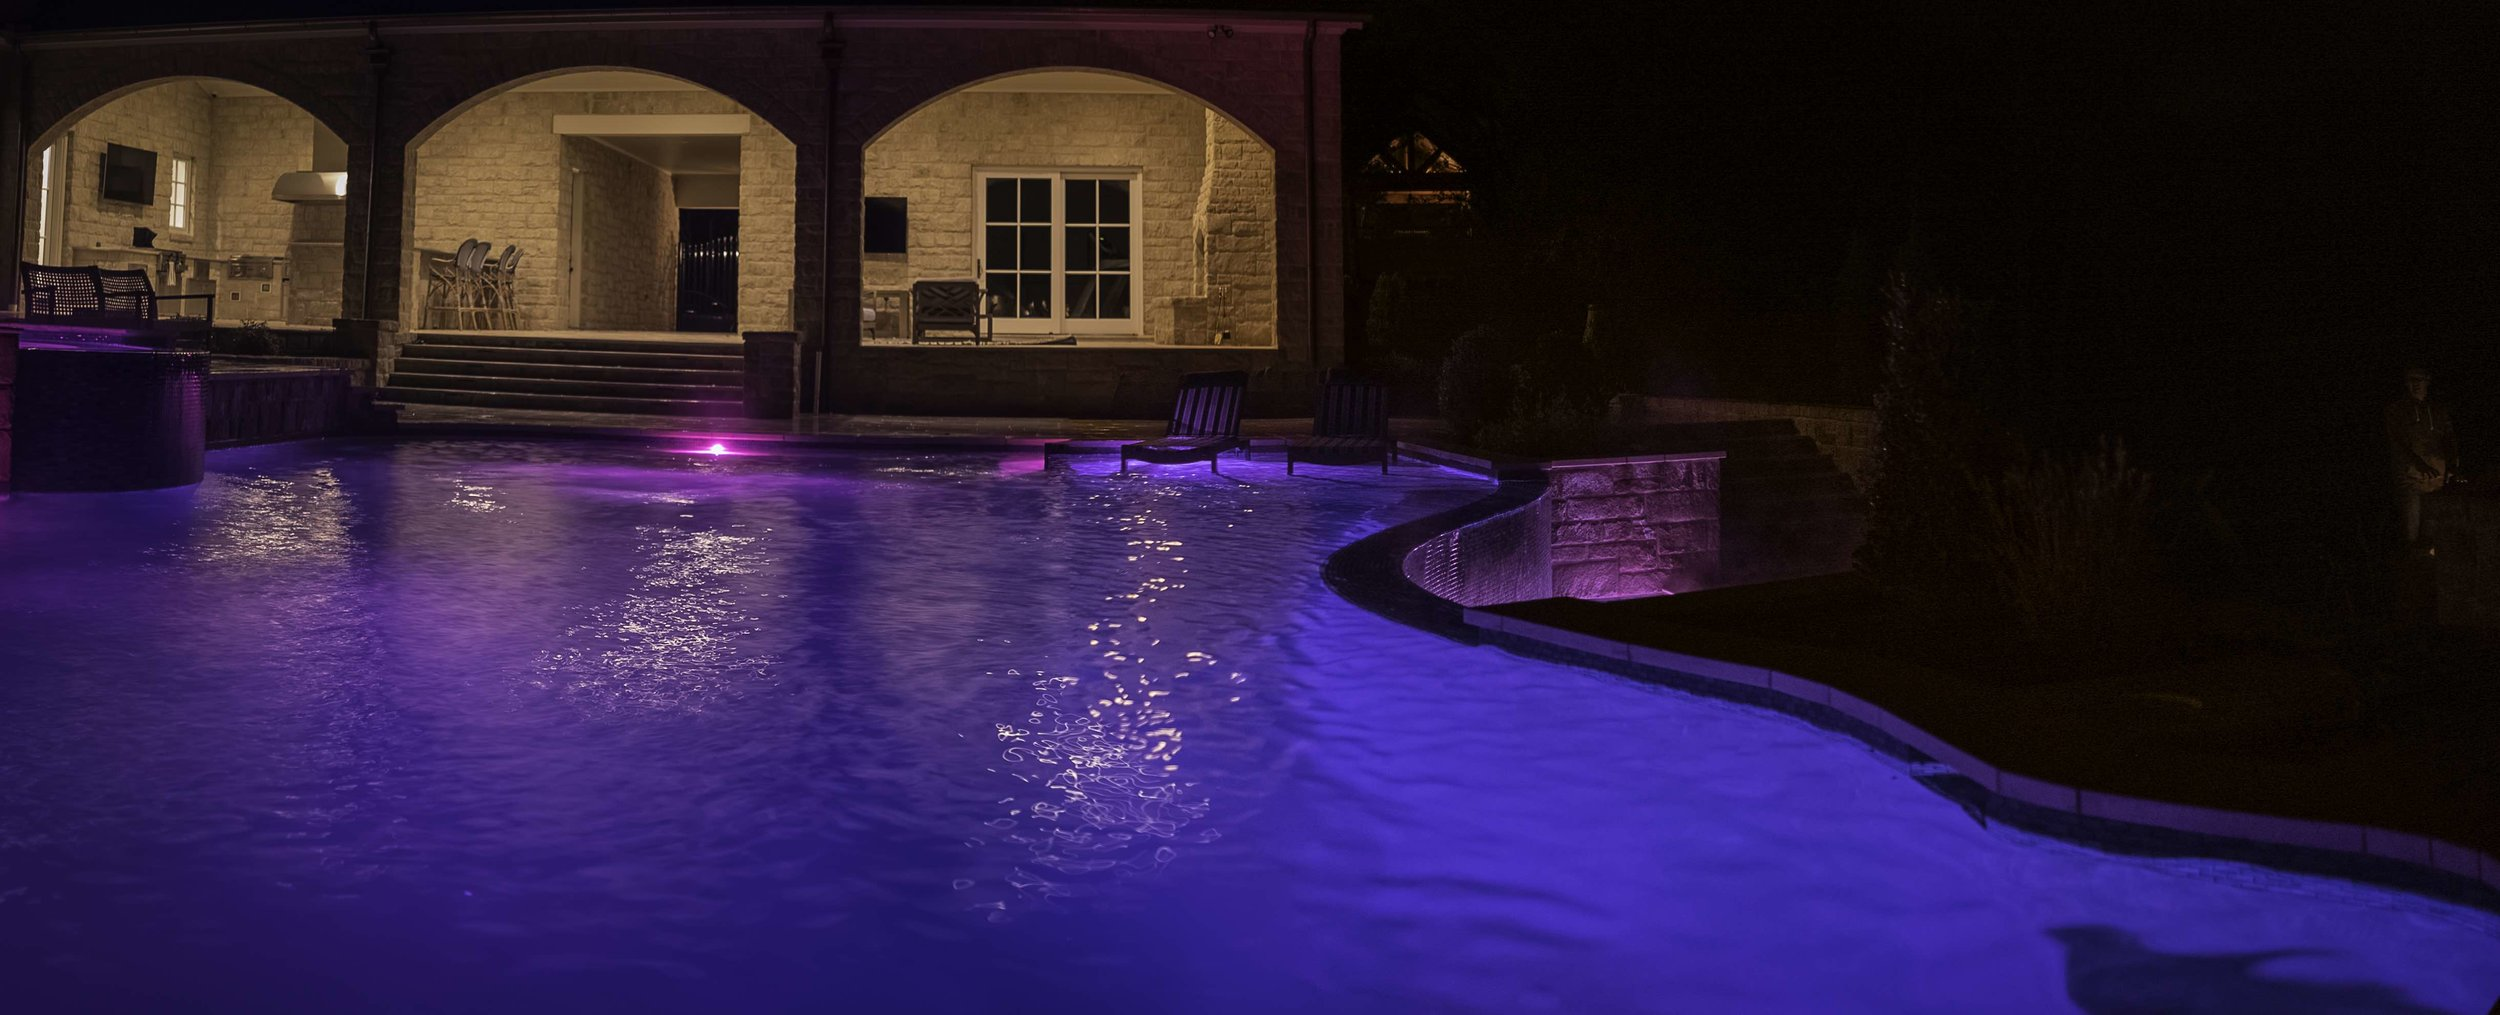 Myers Pool | Aquascape Pools | Edmond | evening | color | ANDREW G | super wide panorama | Print Ready - 06.jpg